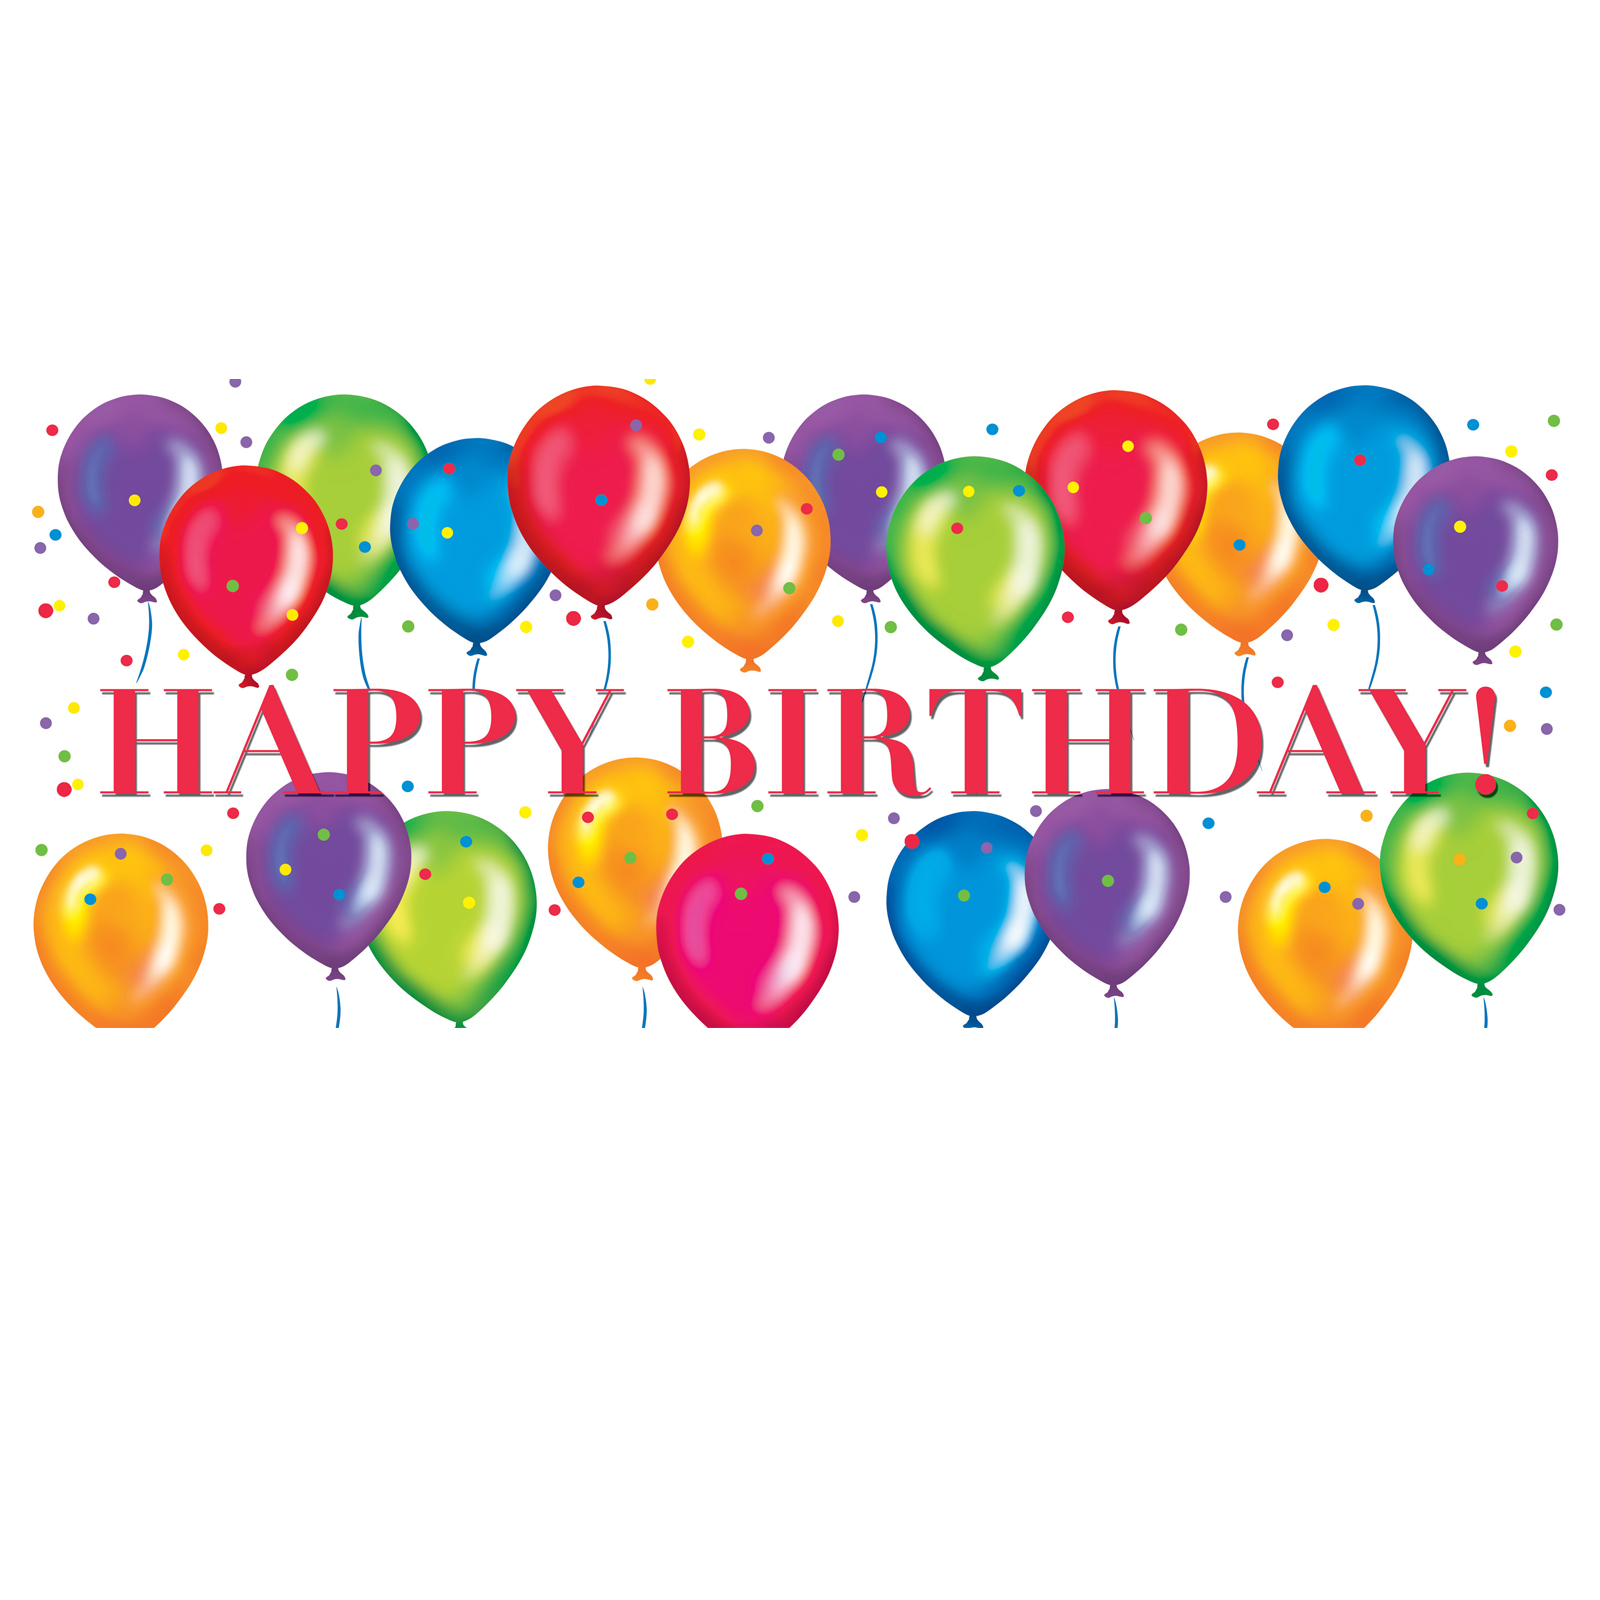 Happy Birthday Clipart Free - ClipartFes-Happy birthday clipart free - ClipartFest-11